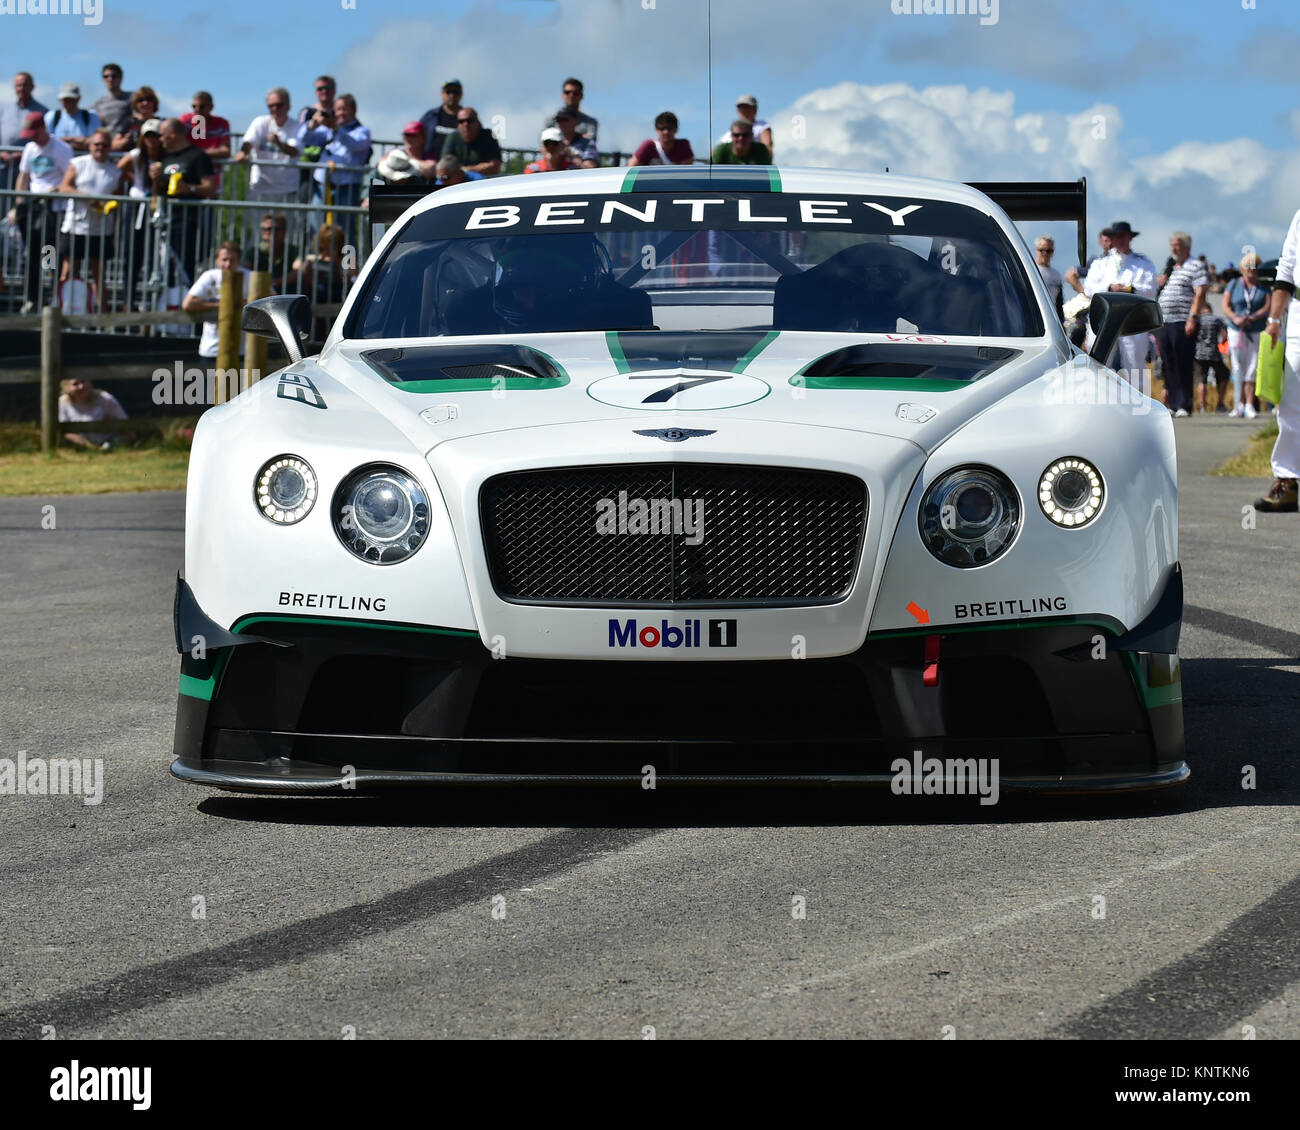 Bentley 2014: Bentley Continental Gt3 Stock Photos & Bentley Continental